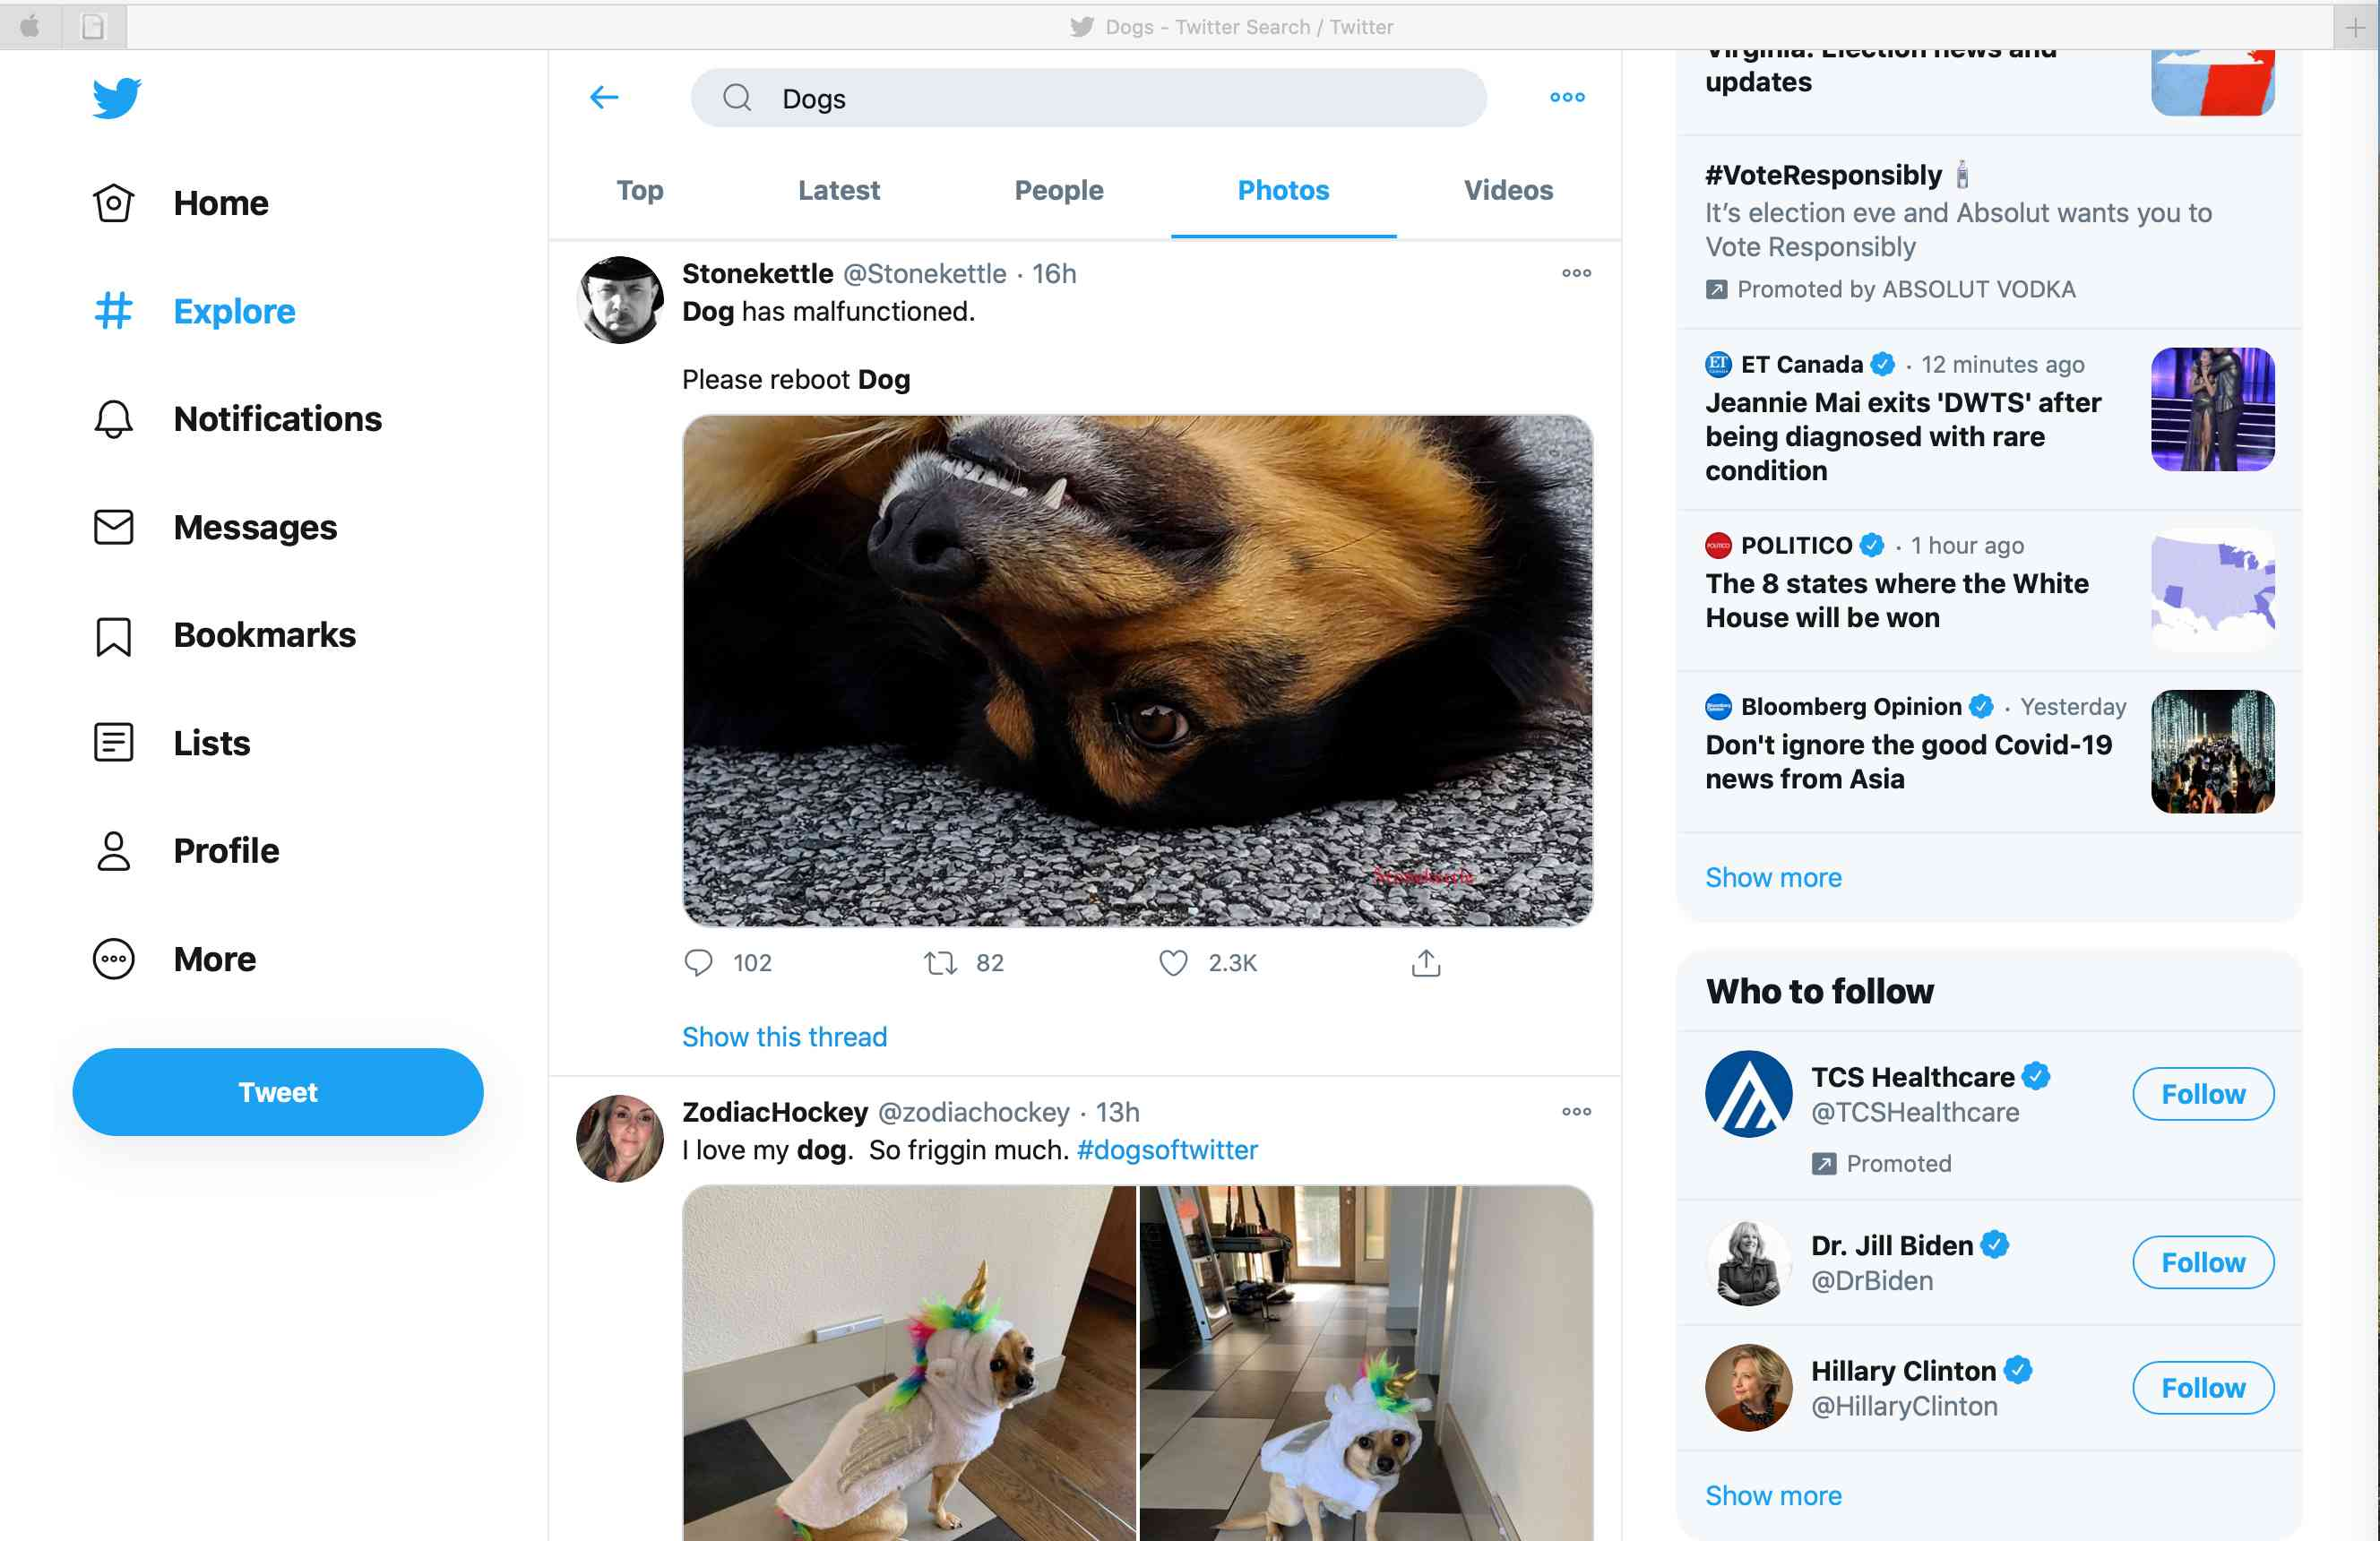 Tweets that contain photos of dogs